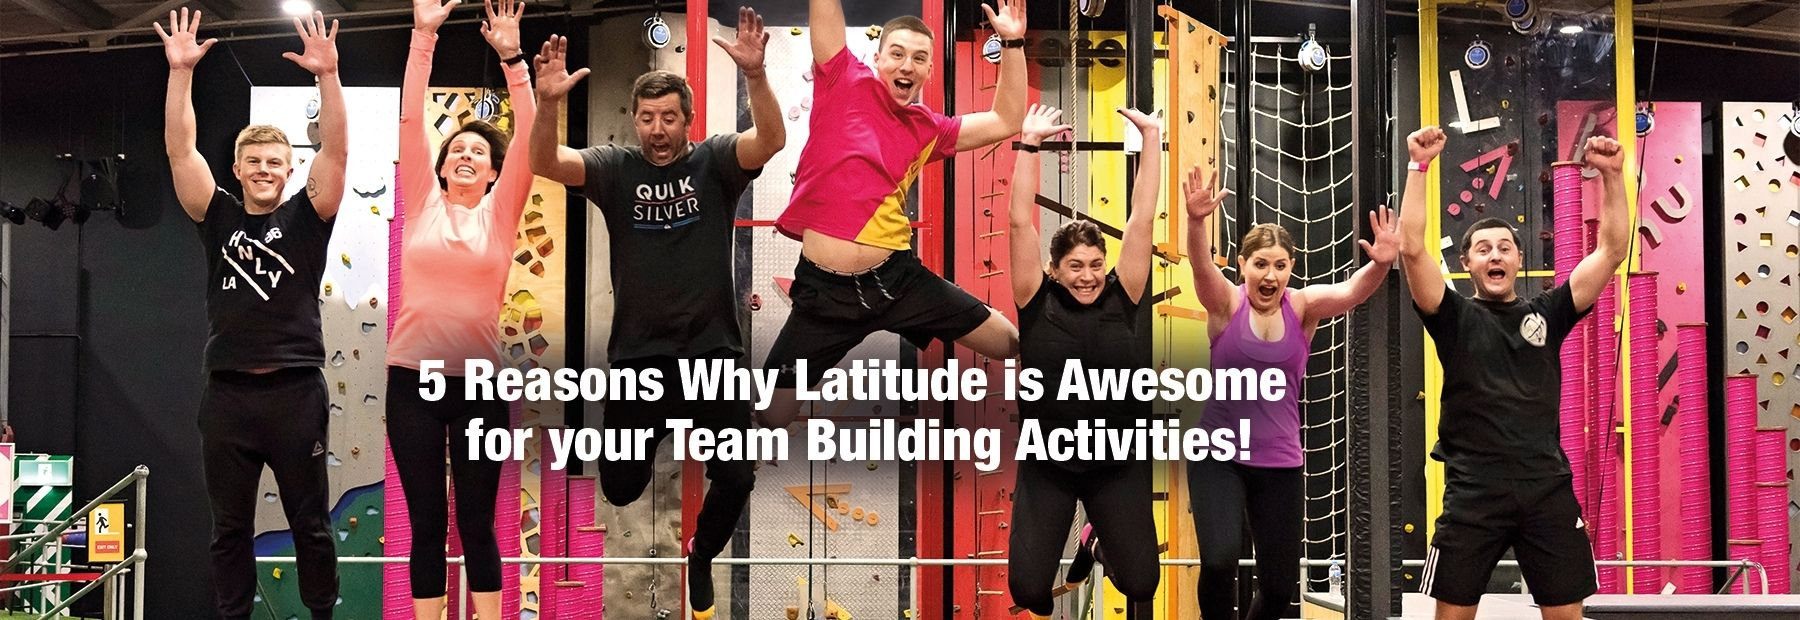 5 Reasons to Choose Latitude for Team Building Fun!